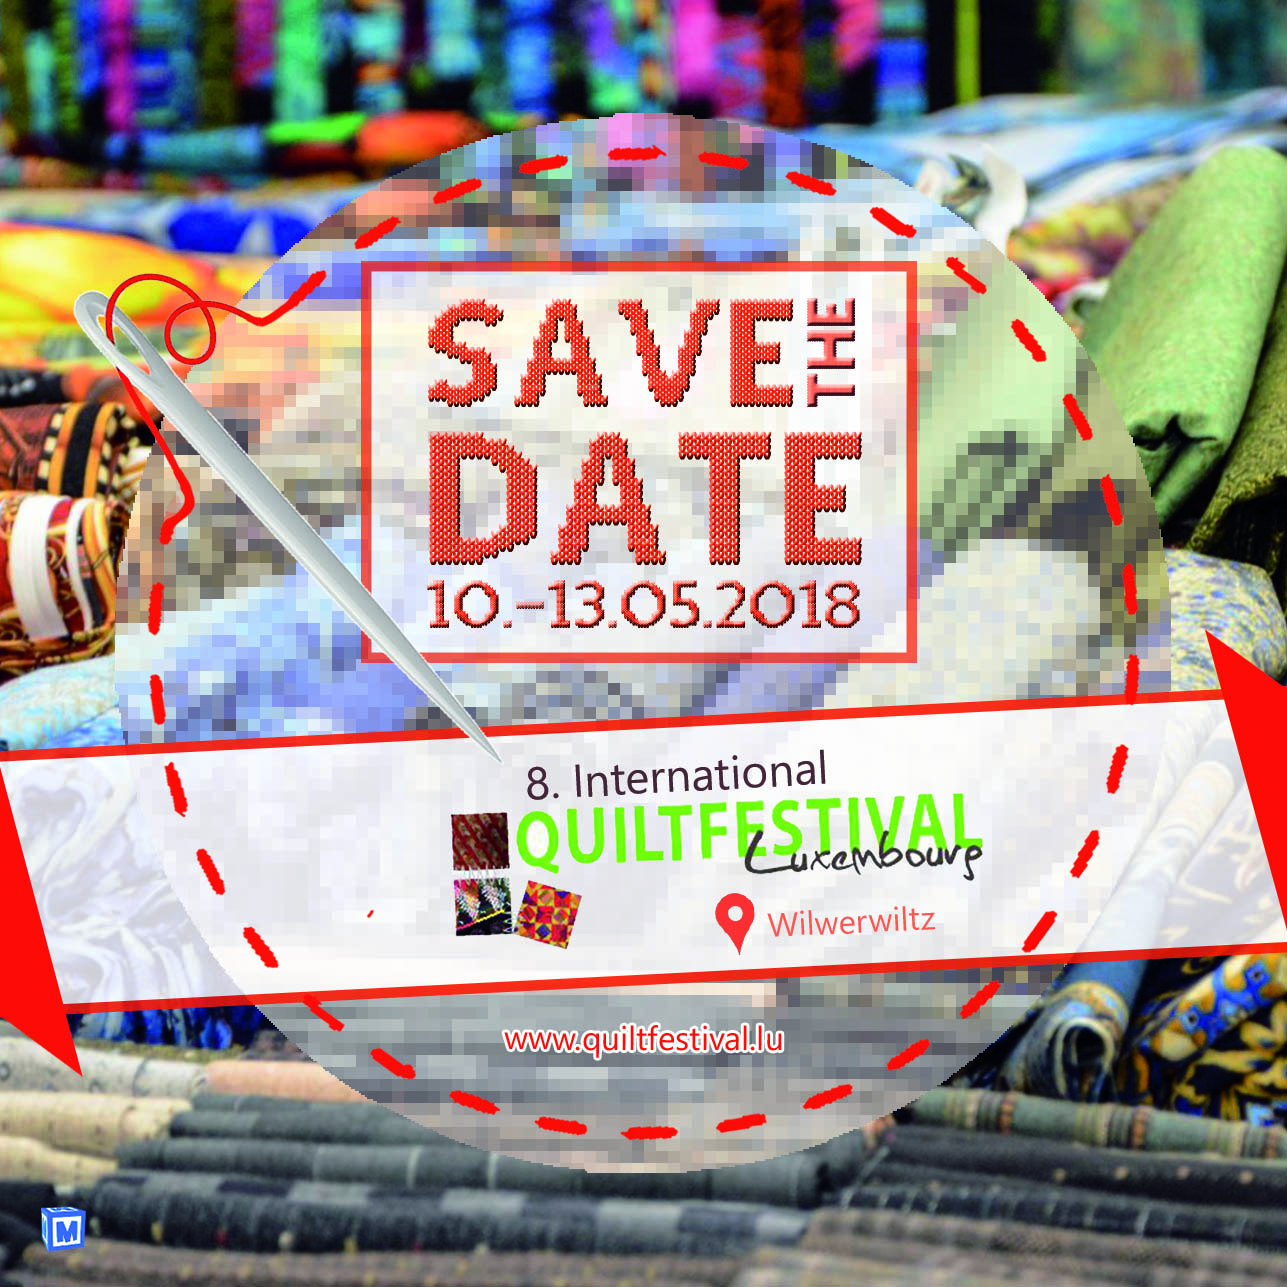 quiltfestival save the date 105mm quadrat